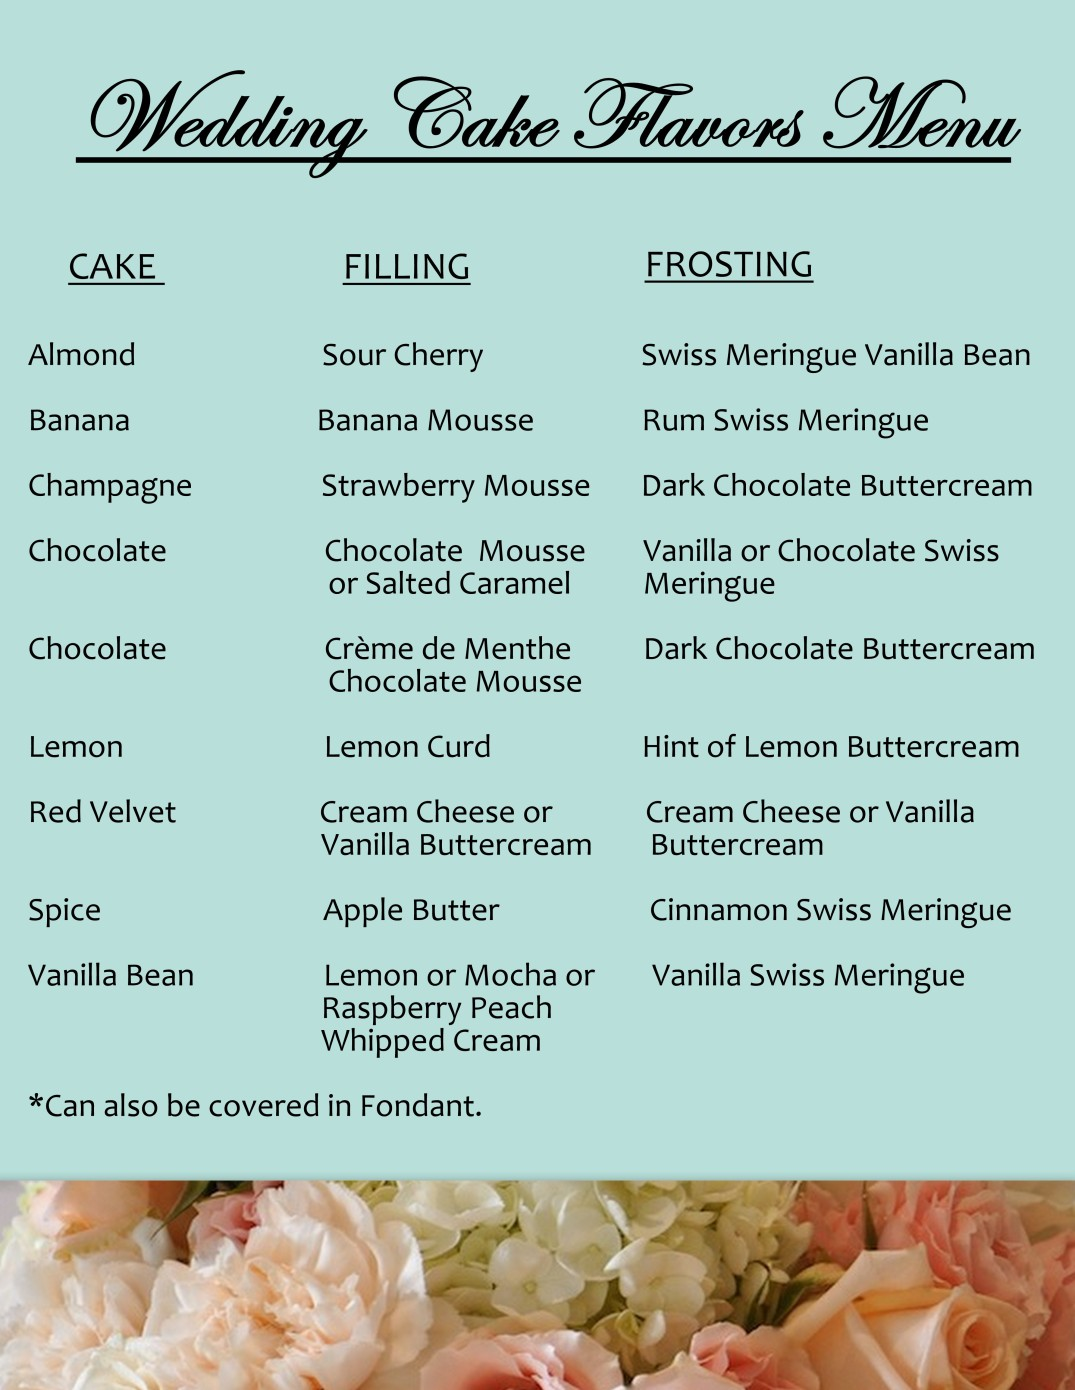 wedding cake flavor menu